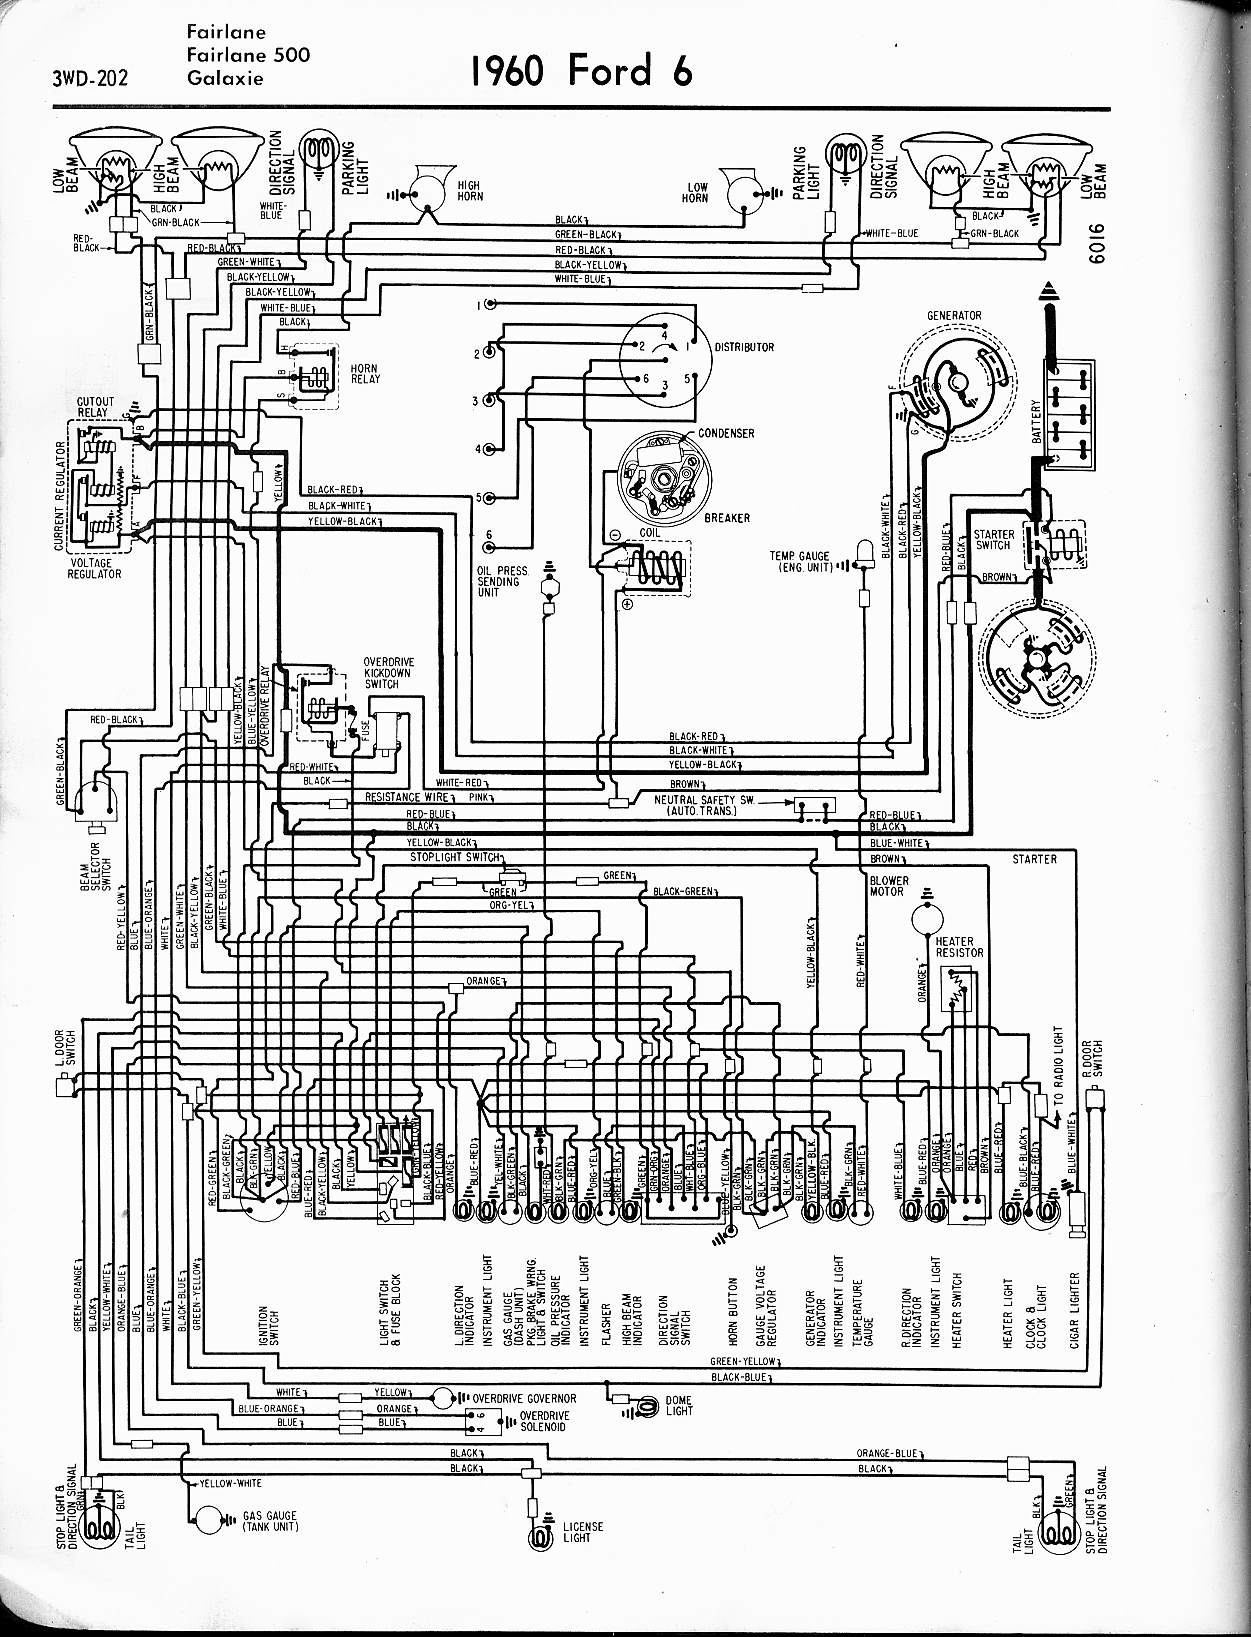 MWire5765 202 57 65 ford wiring diagrams ford truck wiring diagrams at reclaimingppi.co